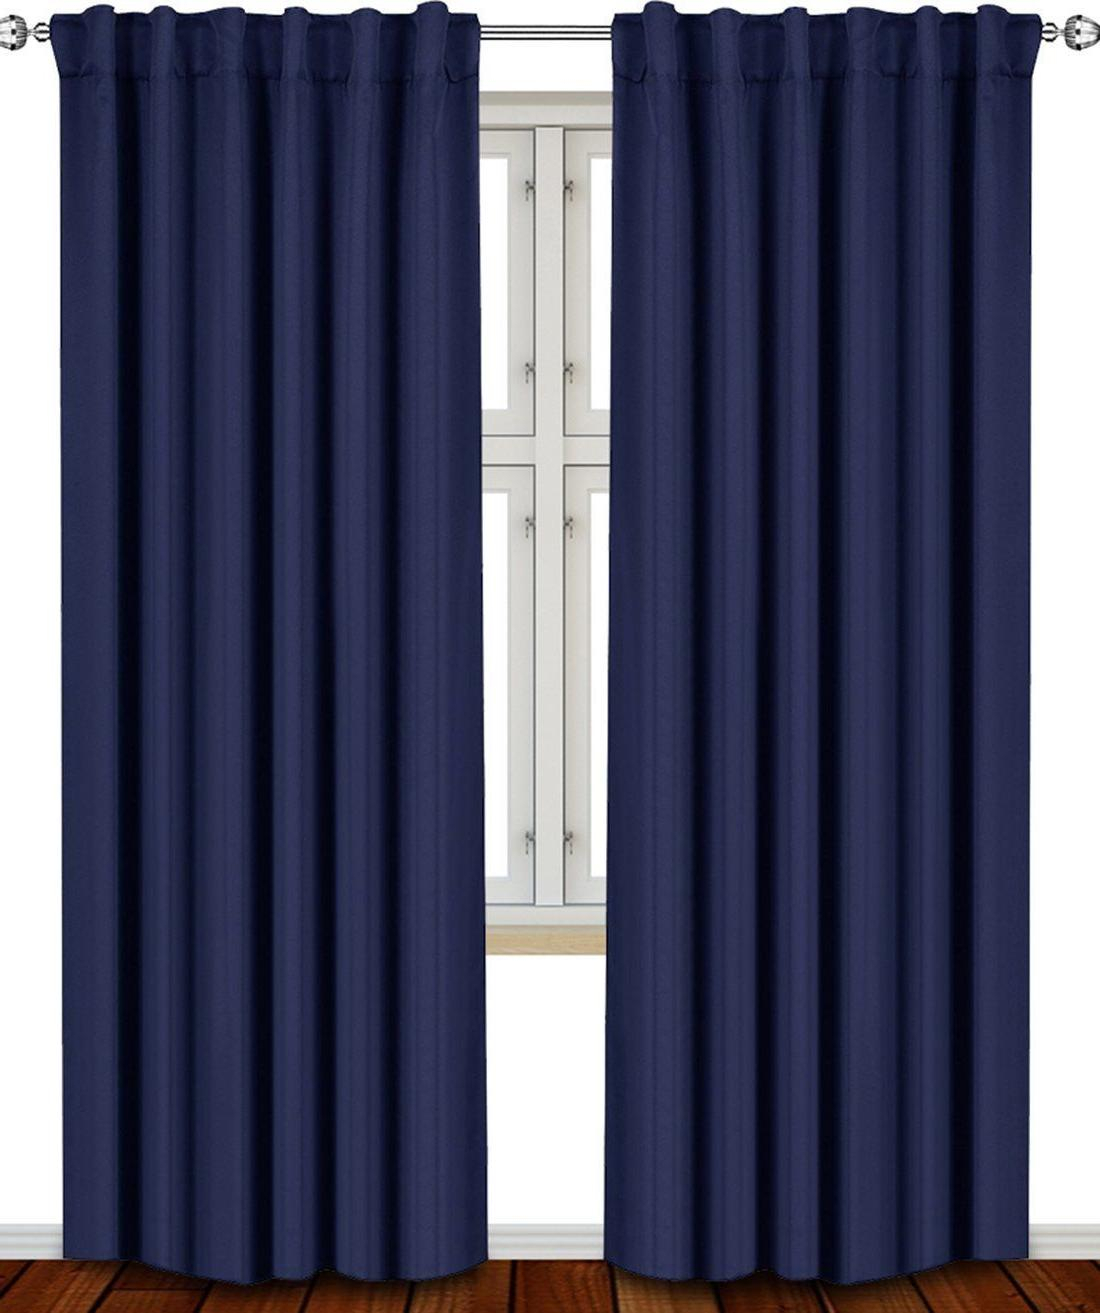 Window Curtains Blackout Room Thermal In Throughout Vina Sheer Bird Single Curtain Panels (View 21 of 30)